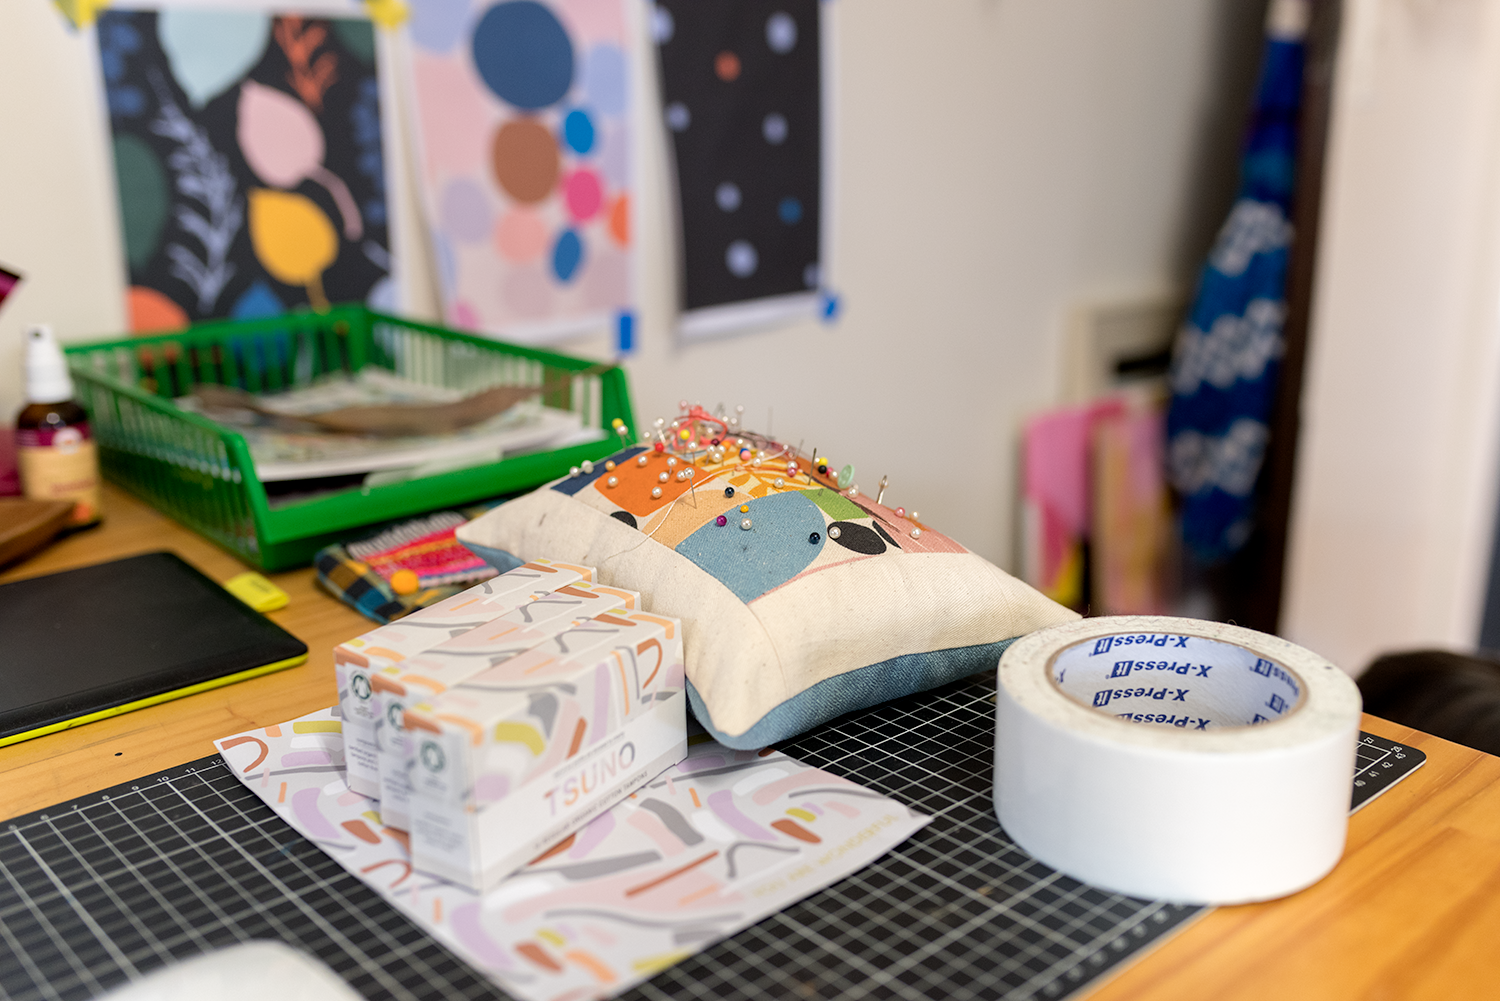 A pin cushion Claire made, using scraps of her fabric. And some Tsuno tampons that just arrived in the mail, with packaging designed by Andrea Shaw. Photo © Susan Fitzgerald 2017.